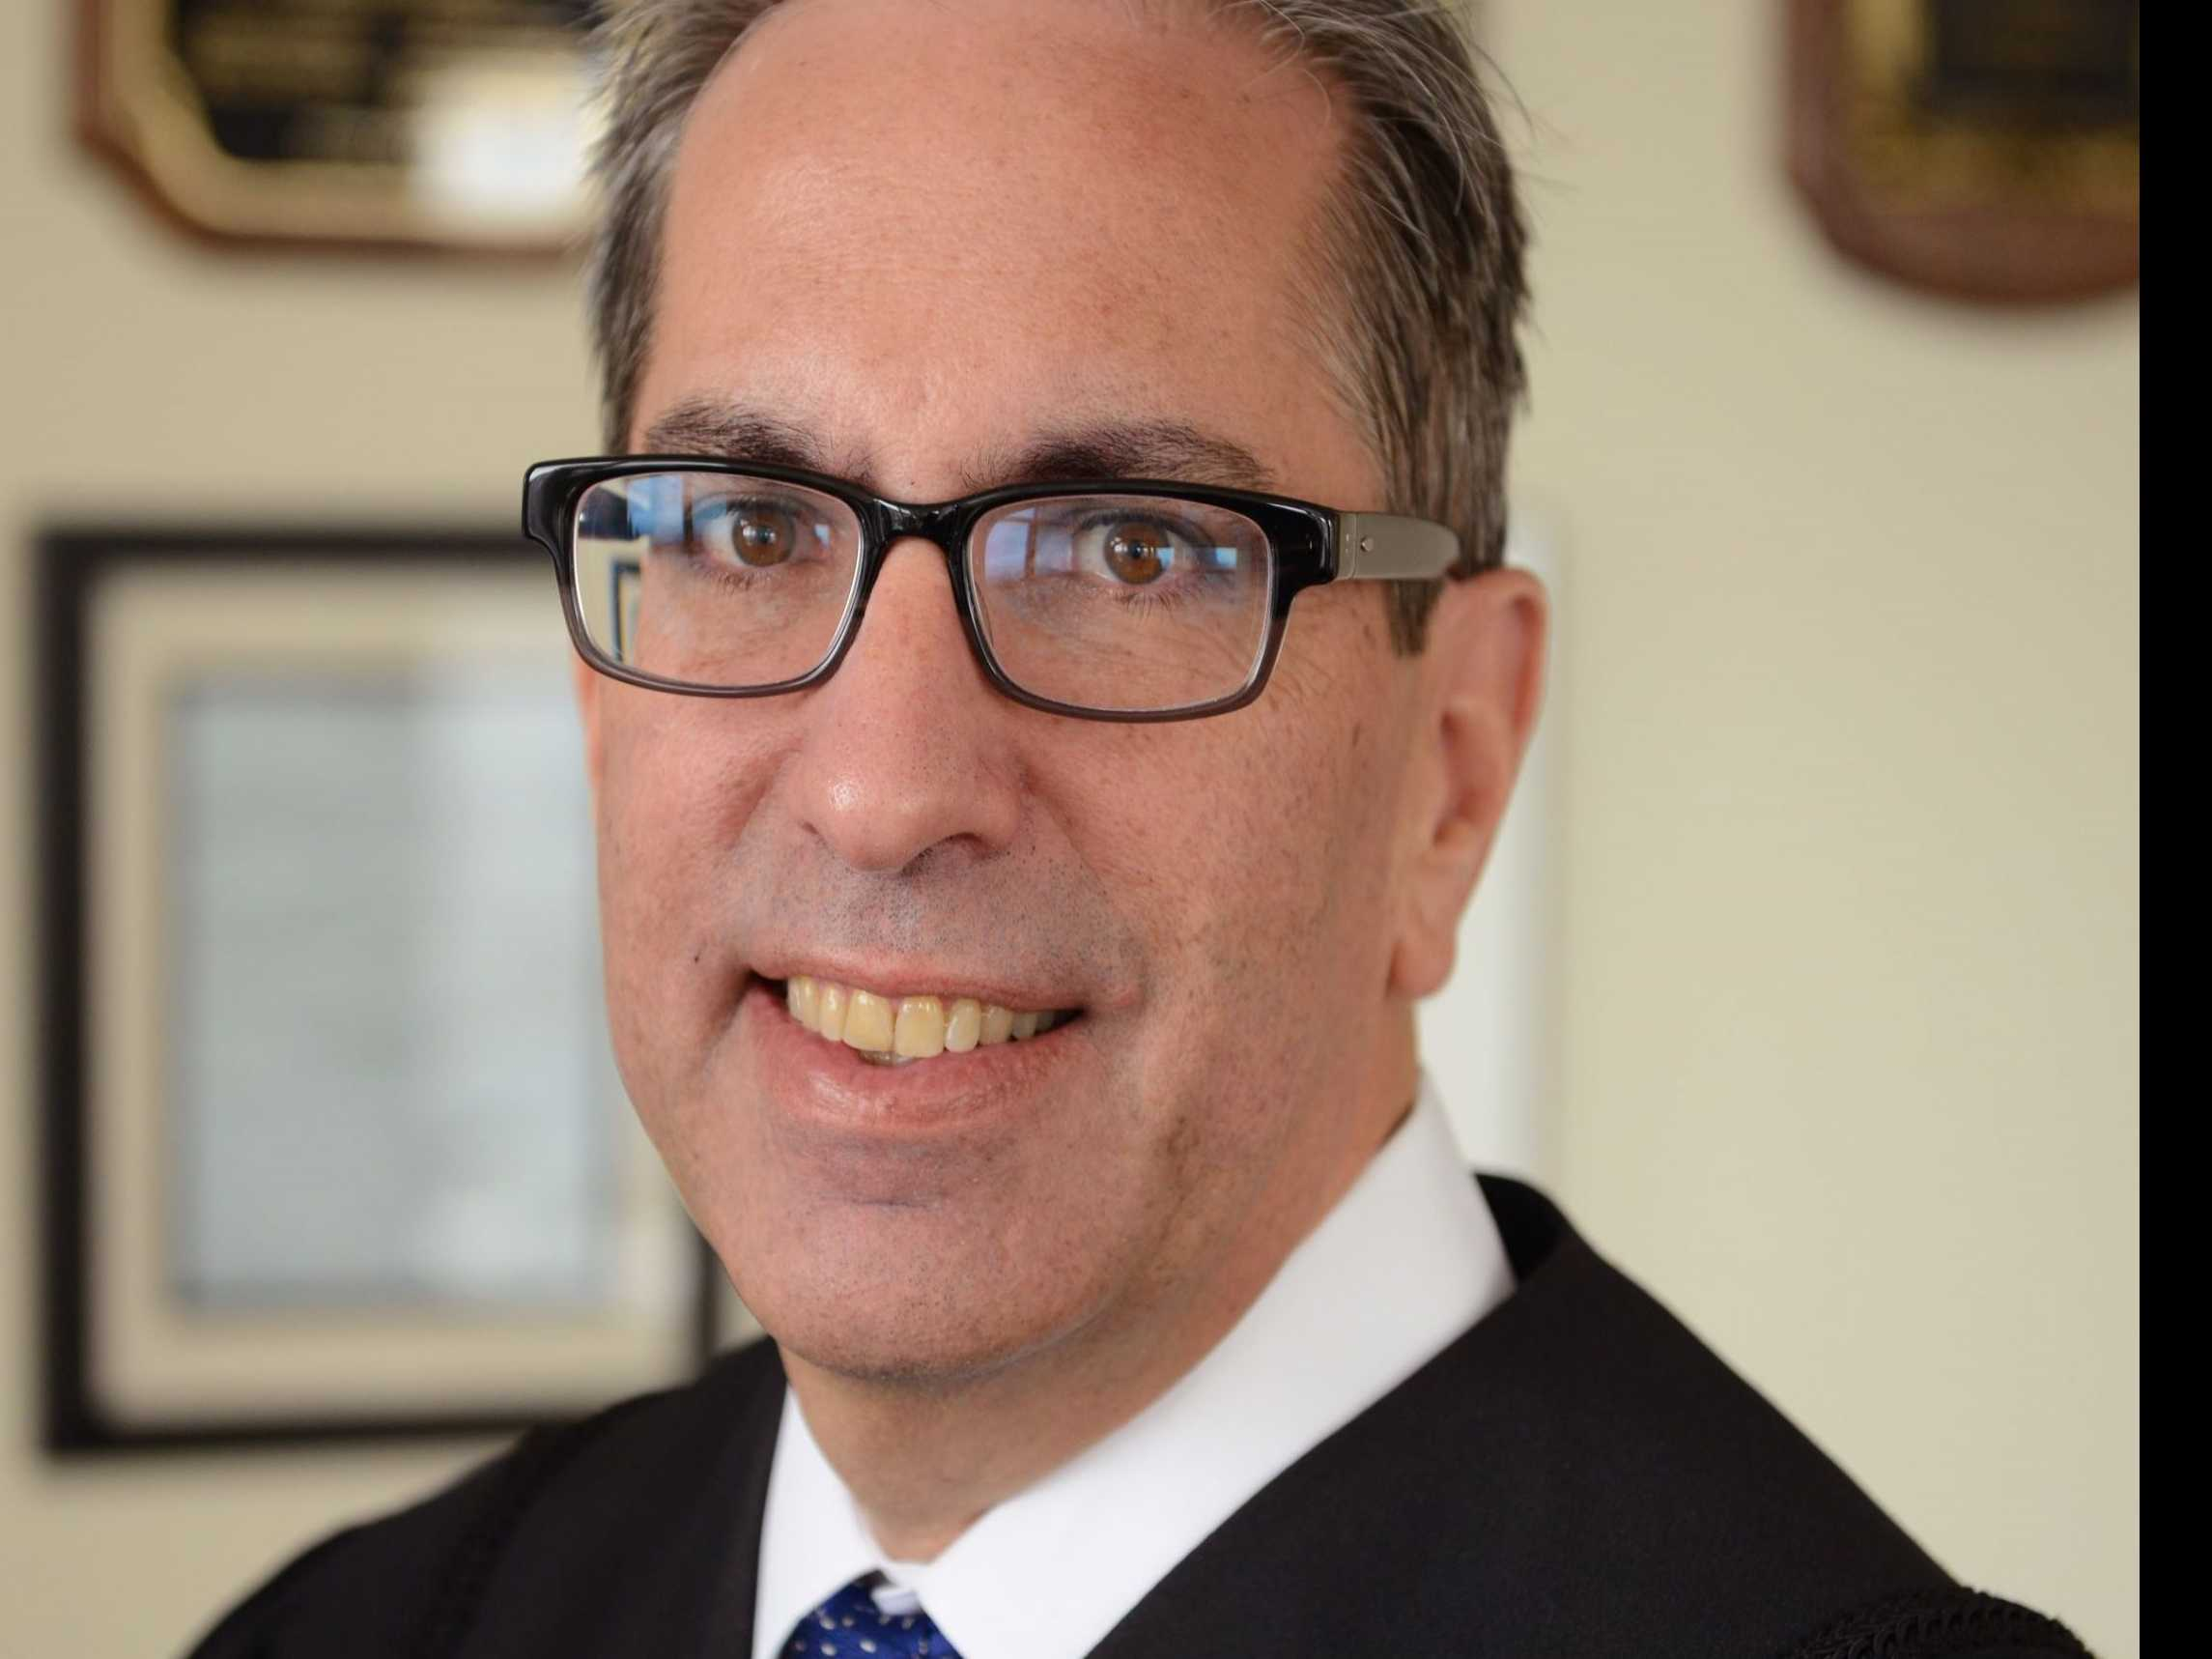 New York's Highest Court Gets Its First Openly Gay Jurist